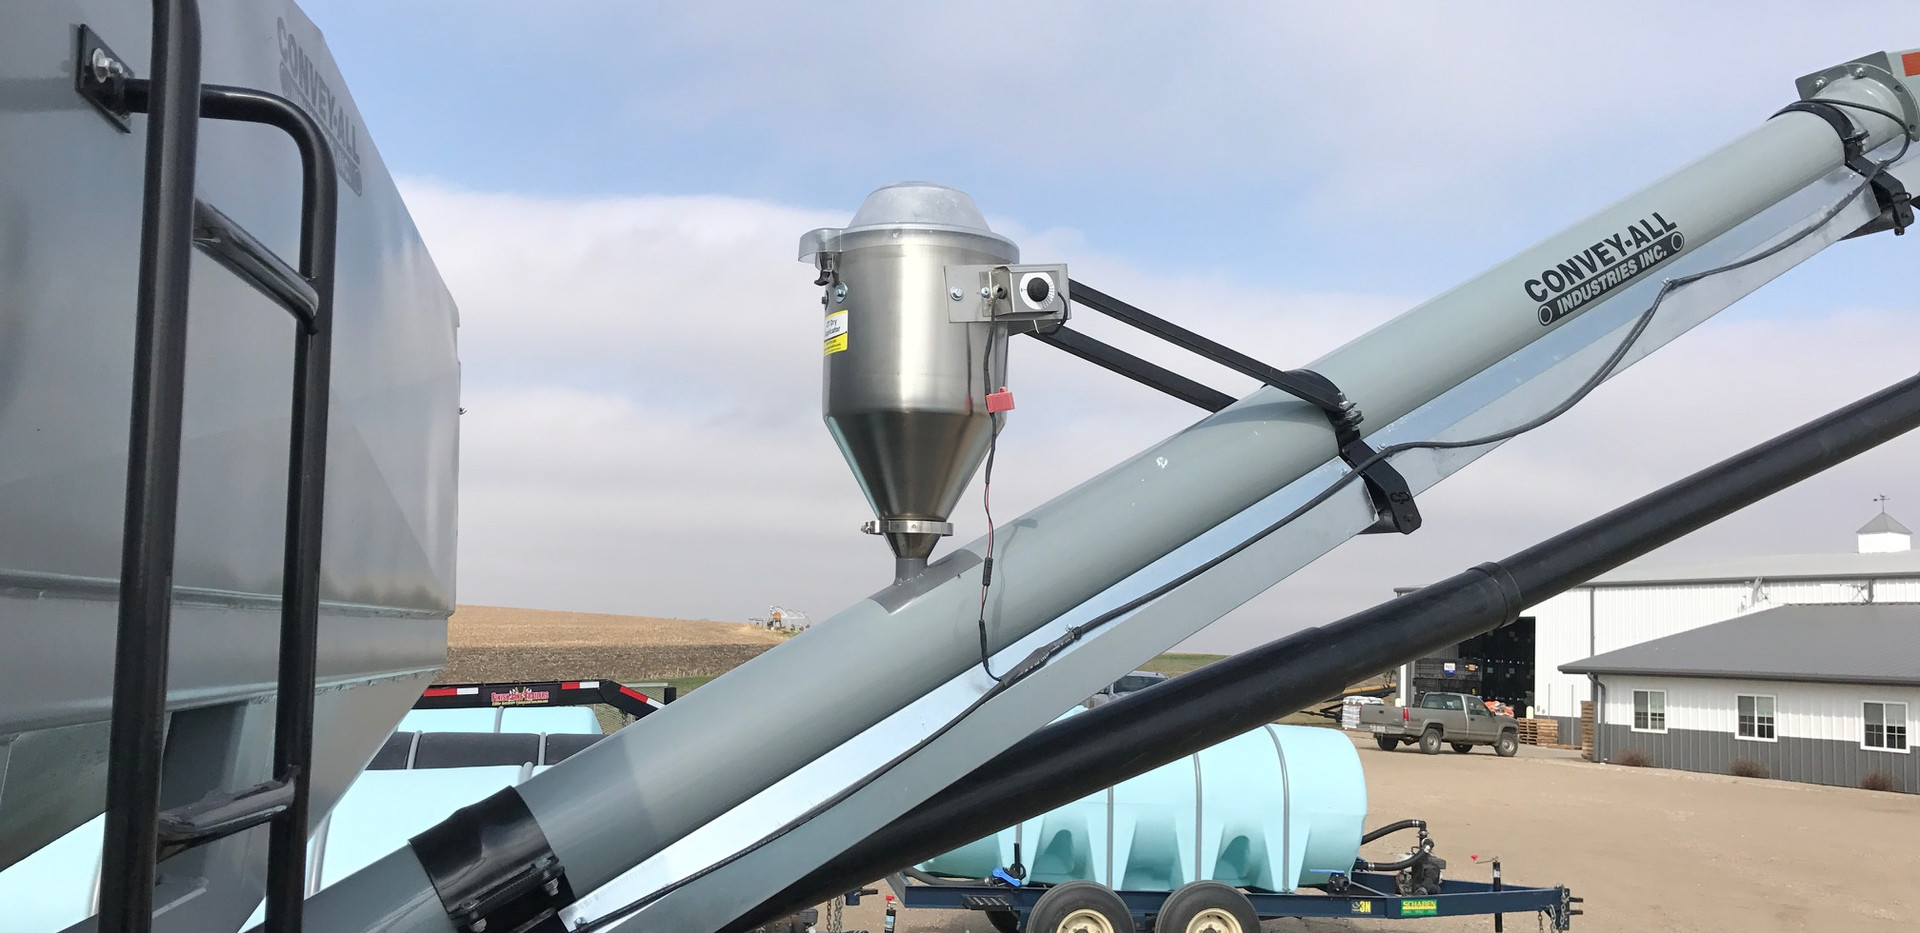 6 Gallon 12v dry applicator mounted on a Convey-All seed tender.